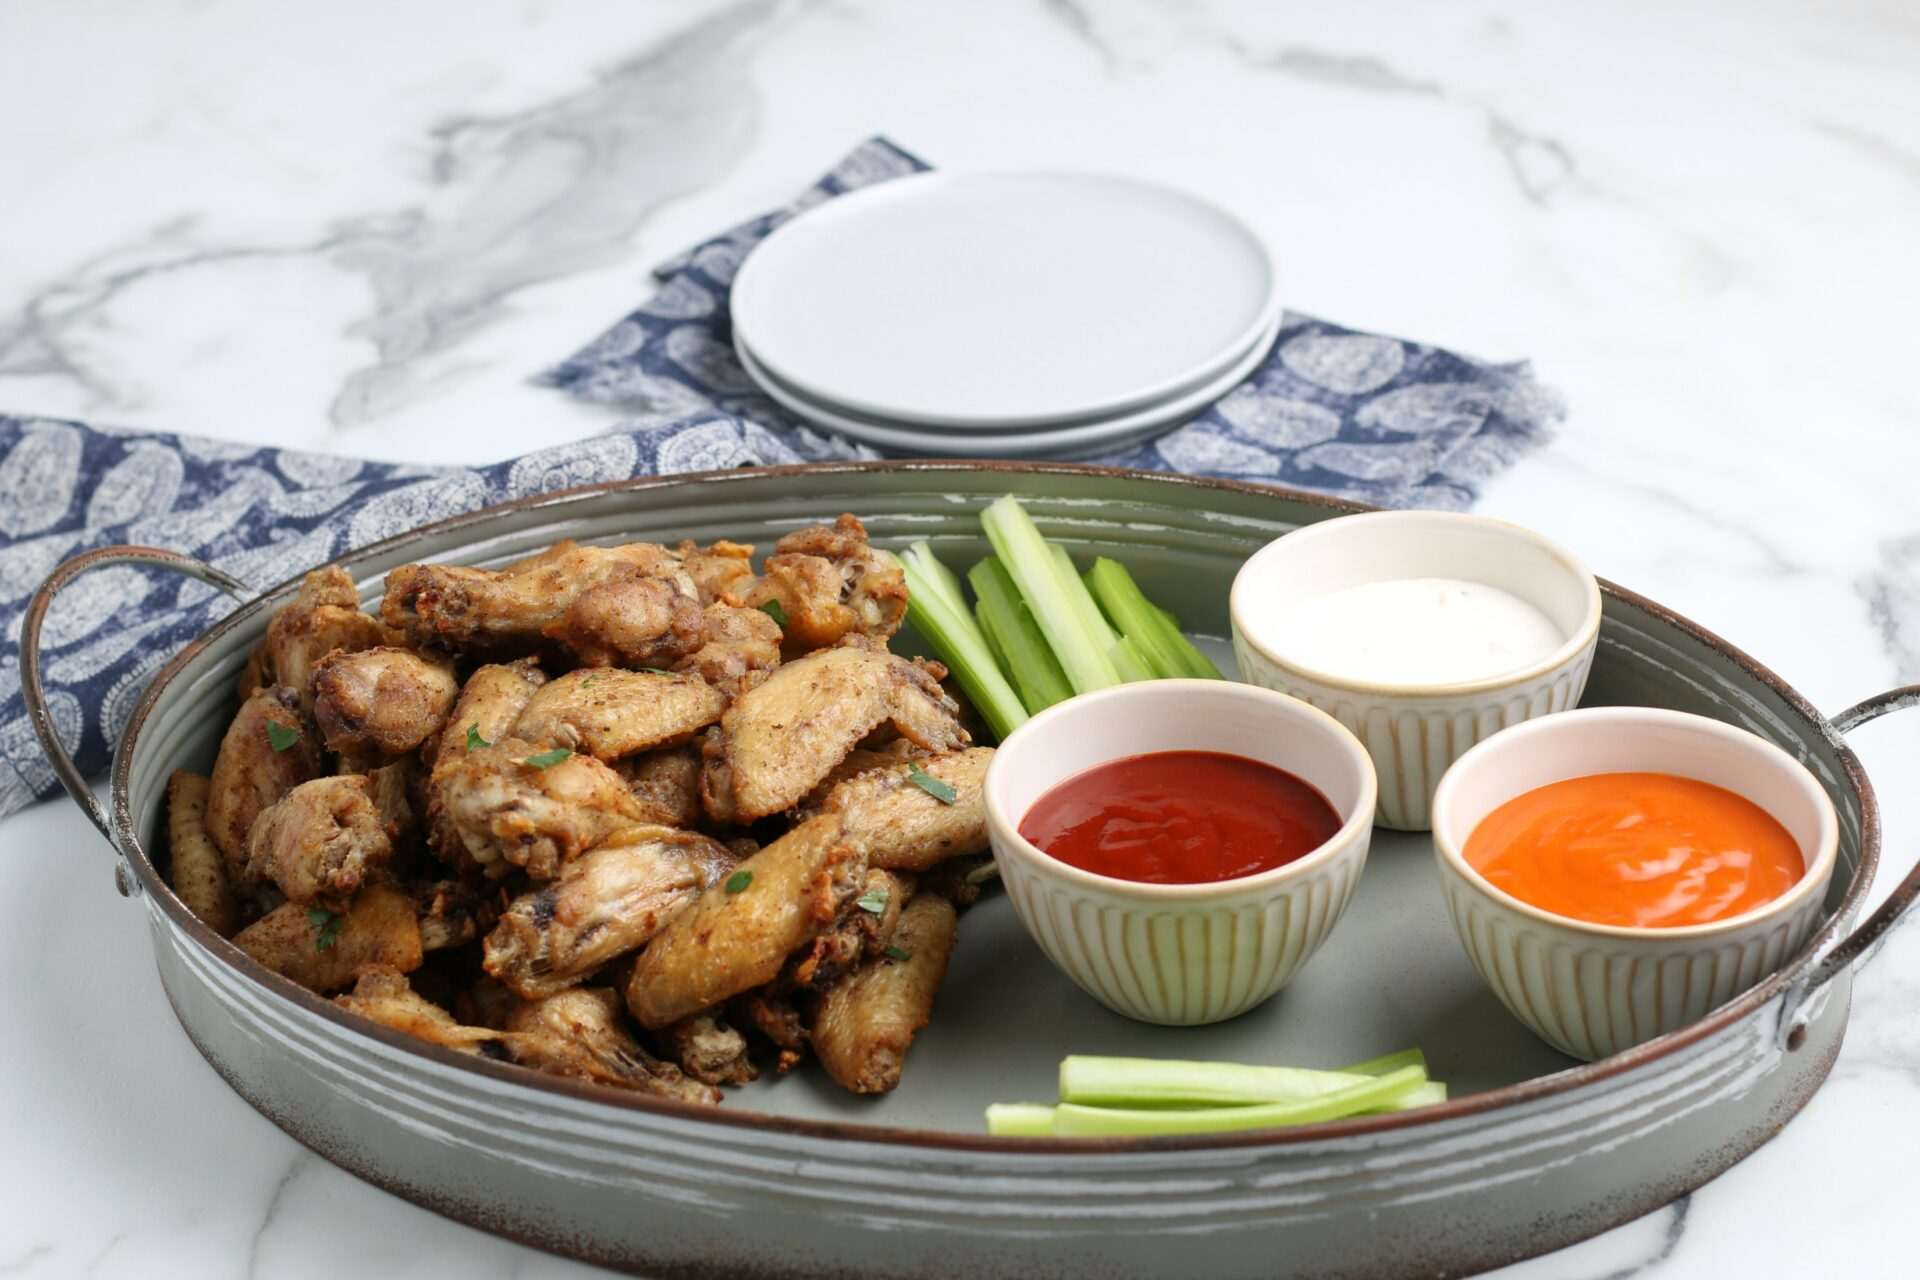 chicken wings on tray with celery and dipping sauces